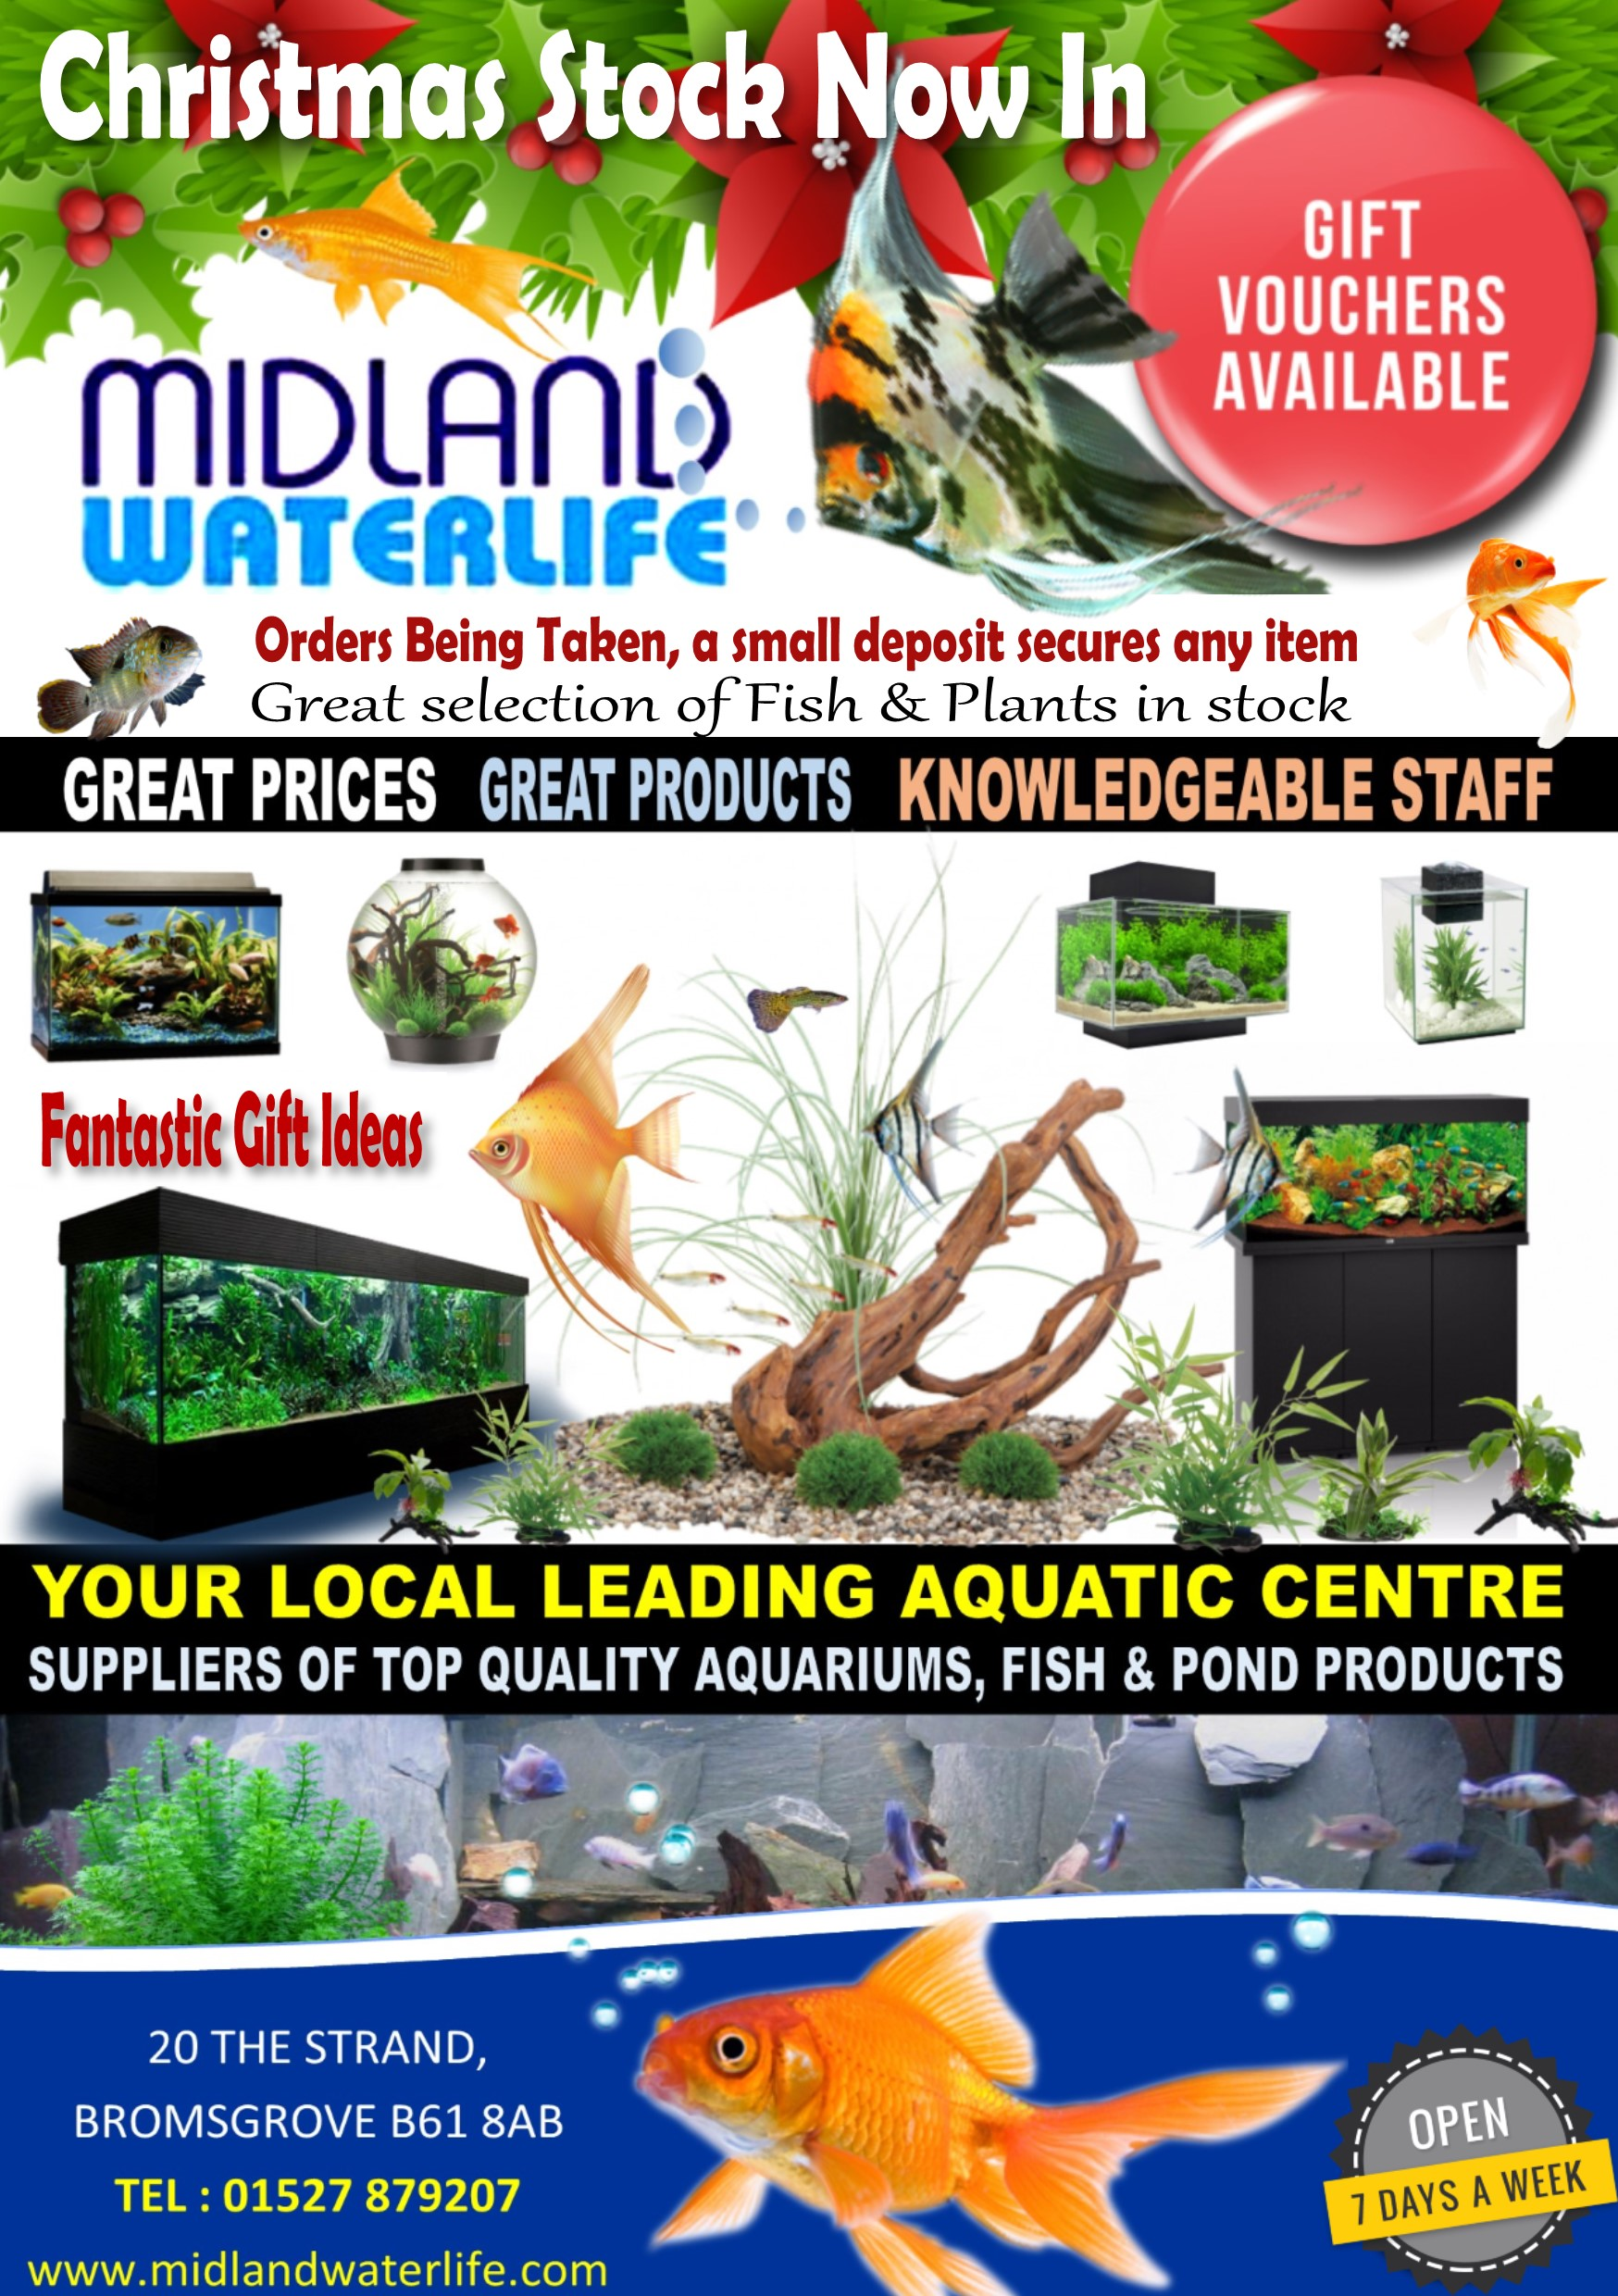 Midland Waterlife Aquatics Bromsgrove